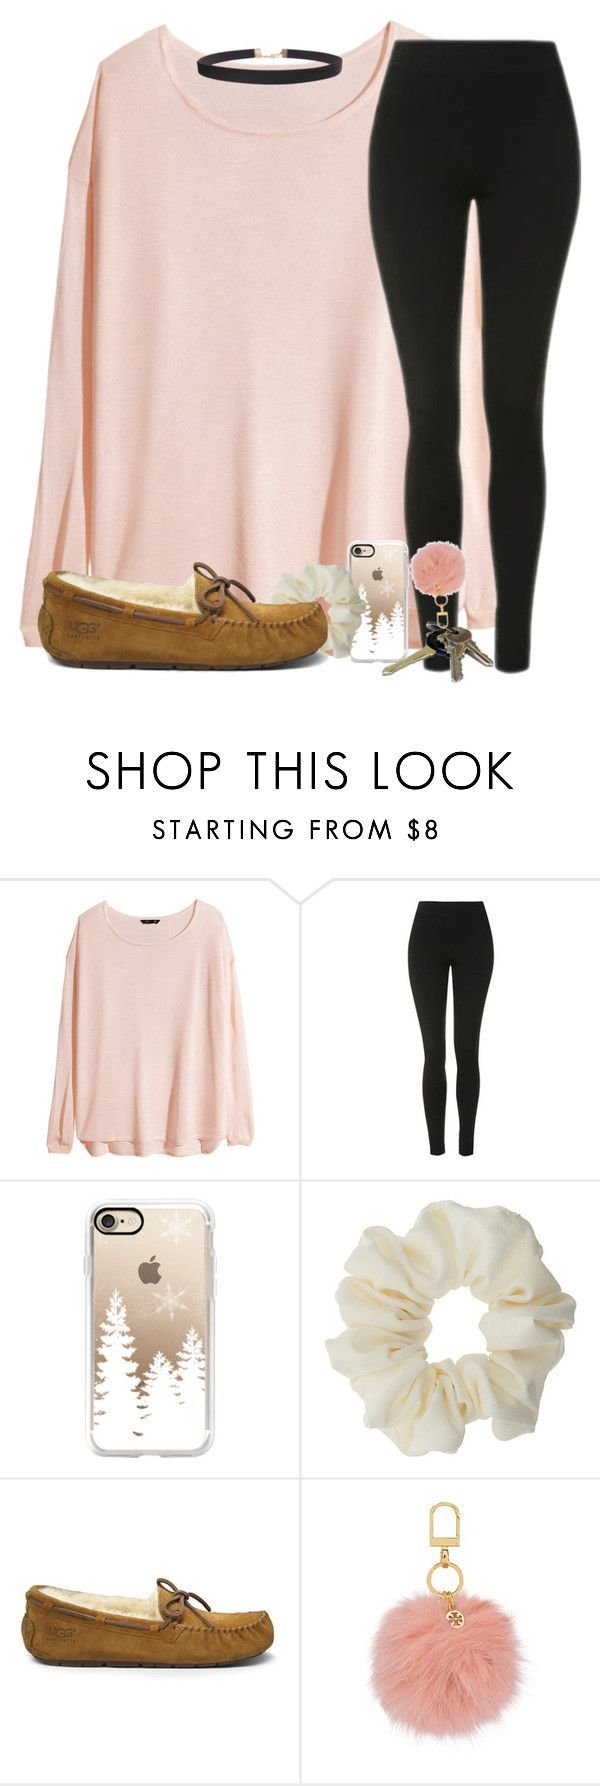 """qotd: what's your favorite christmas tradition?"" by madiweeksss ❤ liked on Polyvore featuring H&M, Topshop, Casetify, Miss Selfridge, UGG Australia, Avon, Tory Burch and Humble Chic"